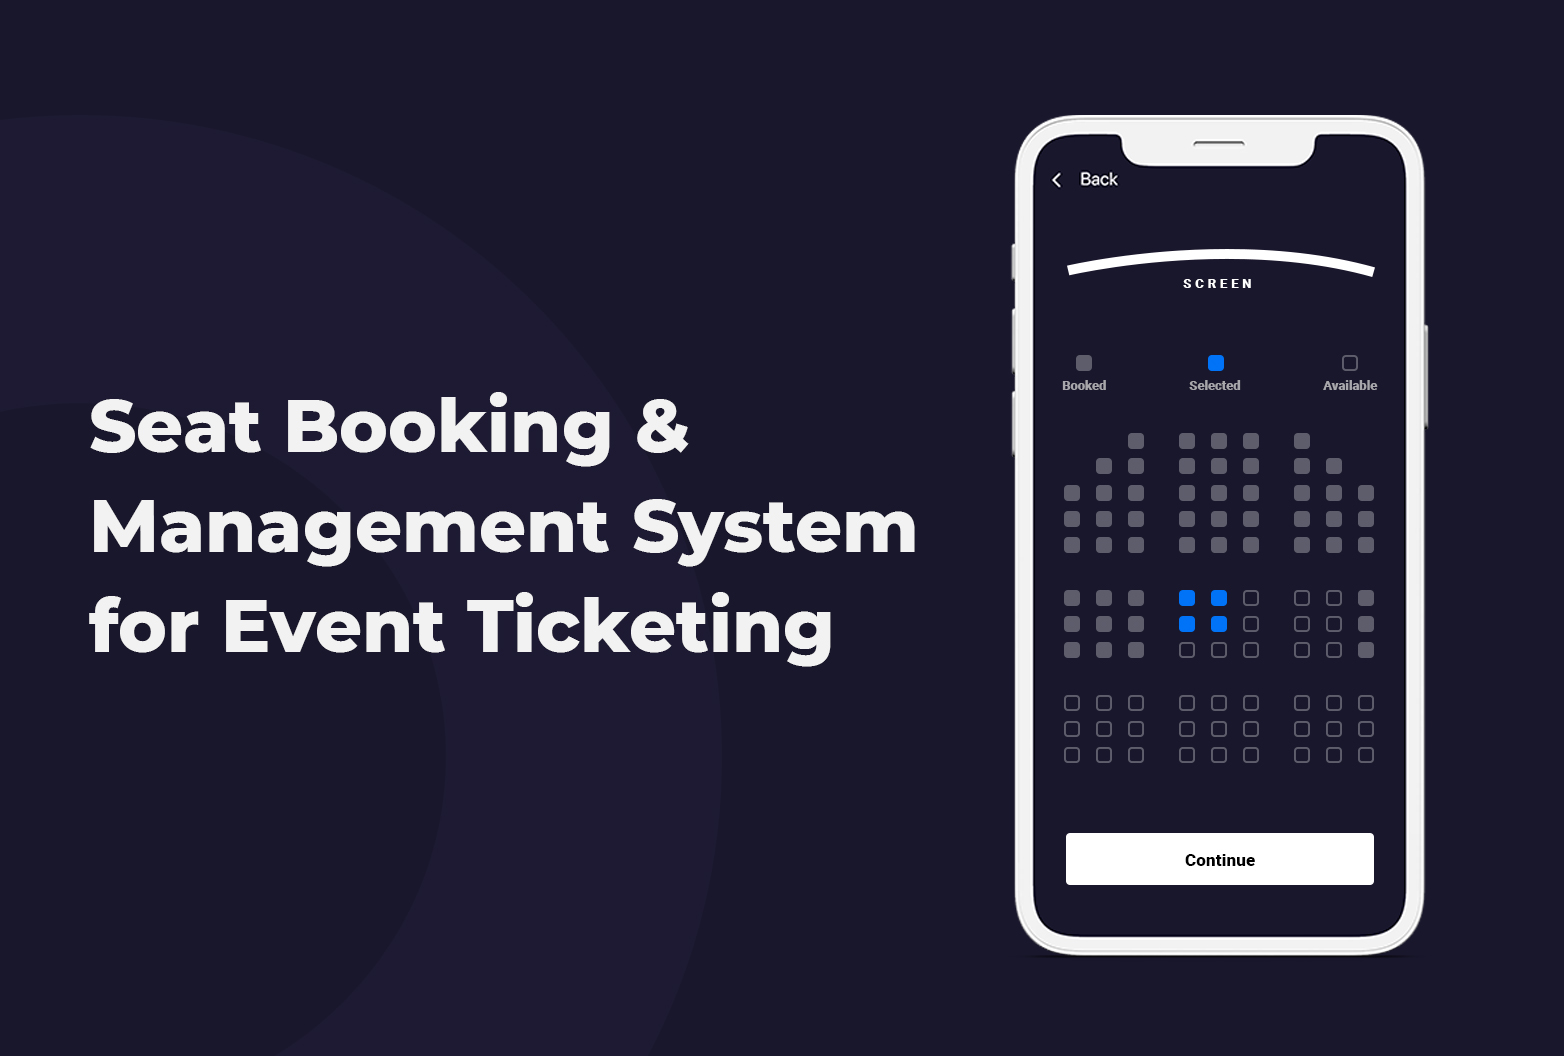 Seat Booking Management System